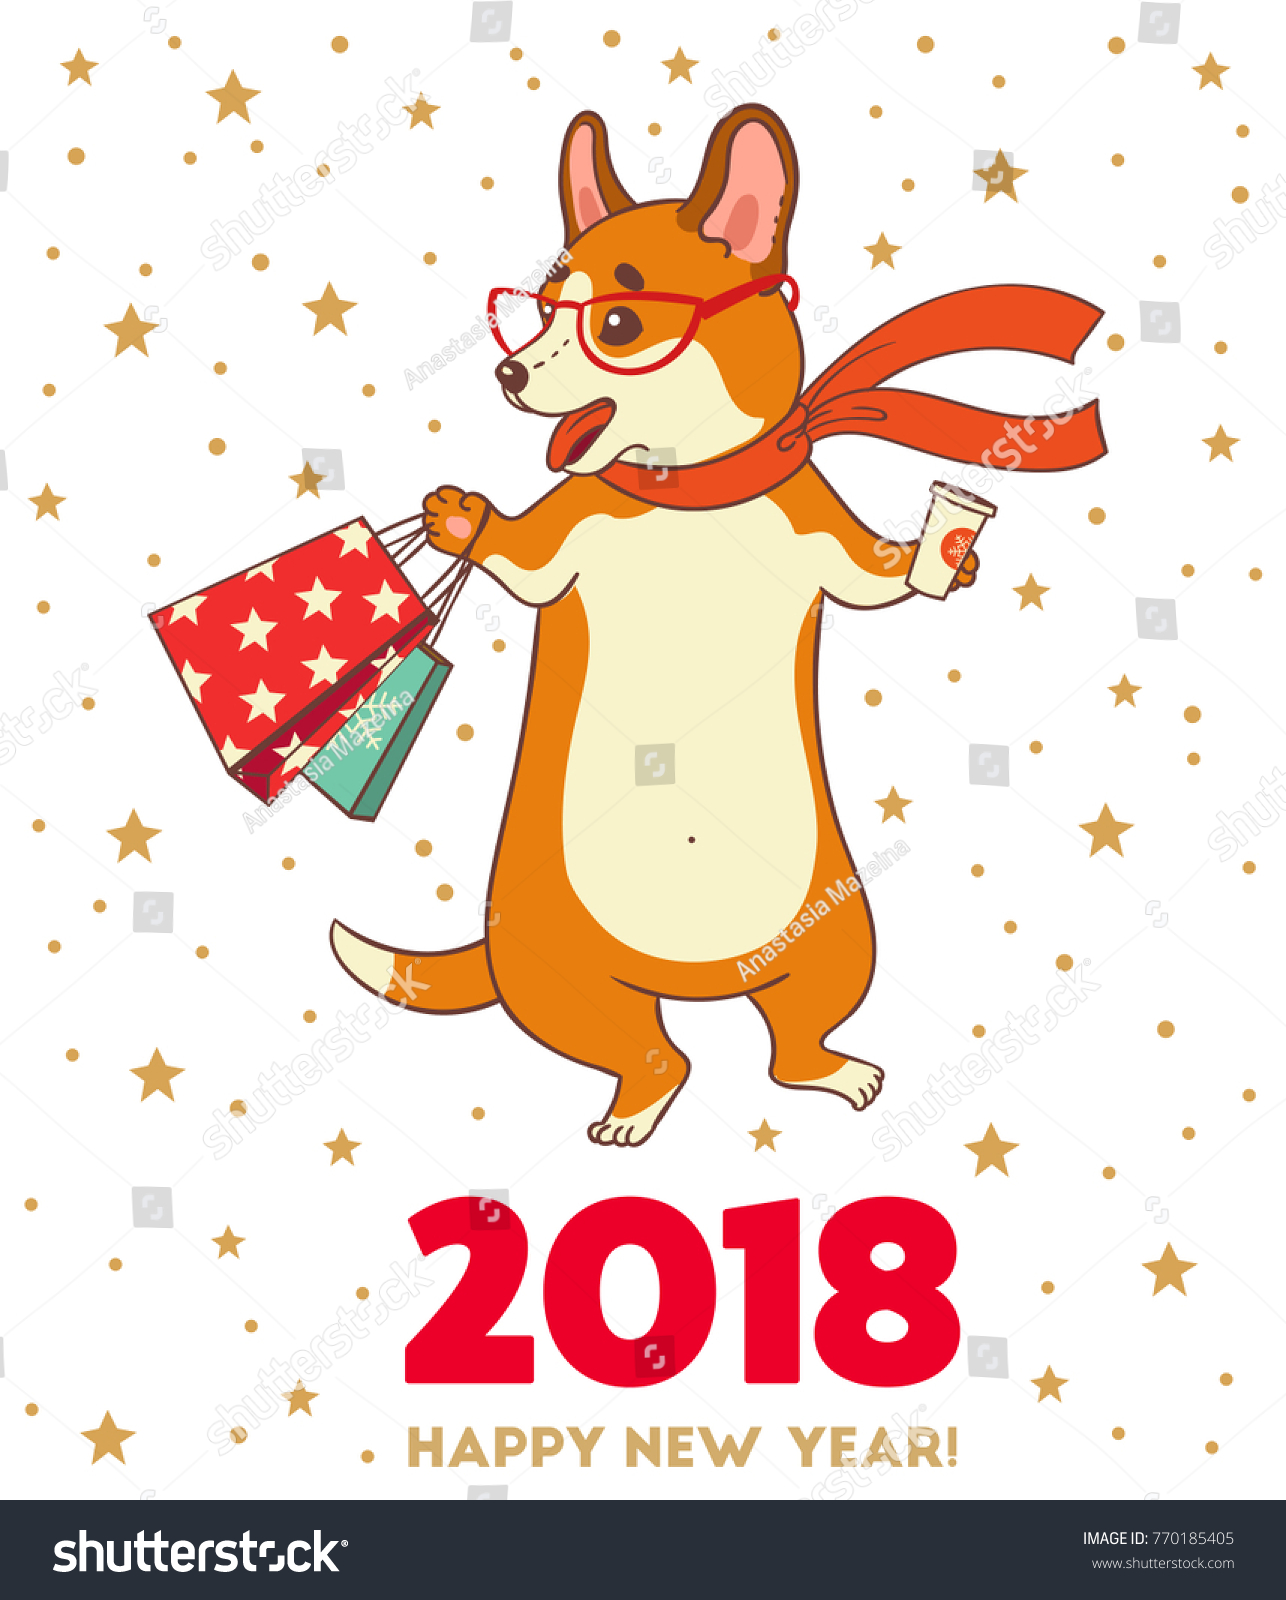 Christmas New Year Greeting Card Cartoon Stock Vector (Royalty Free ...